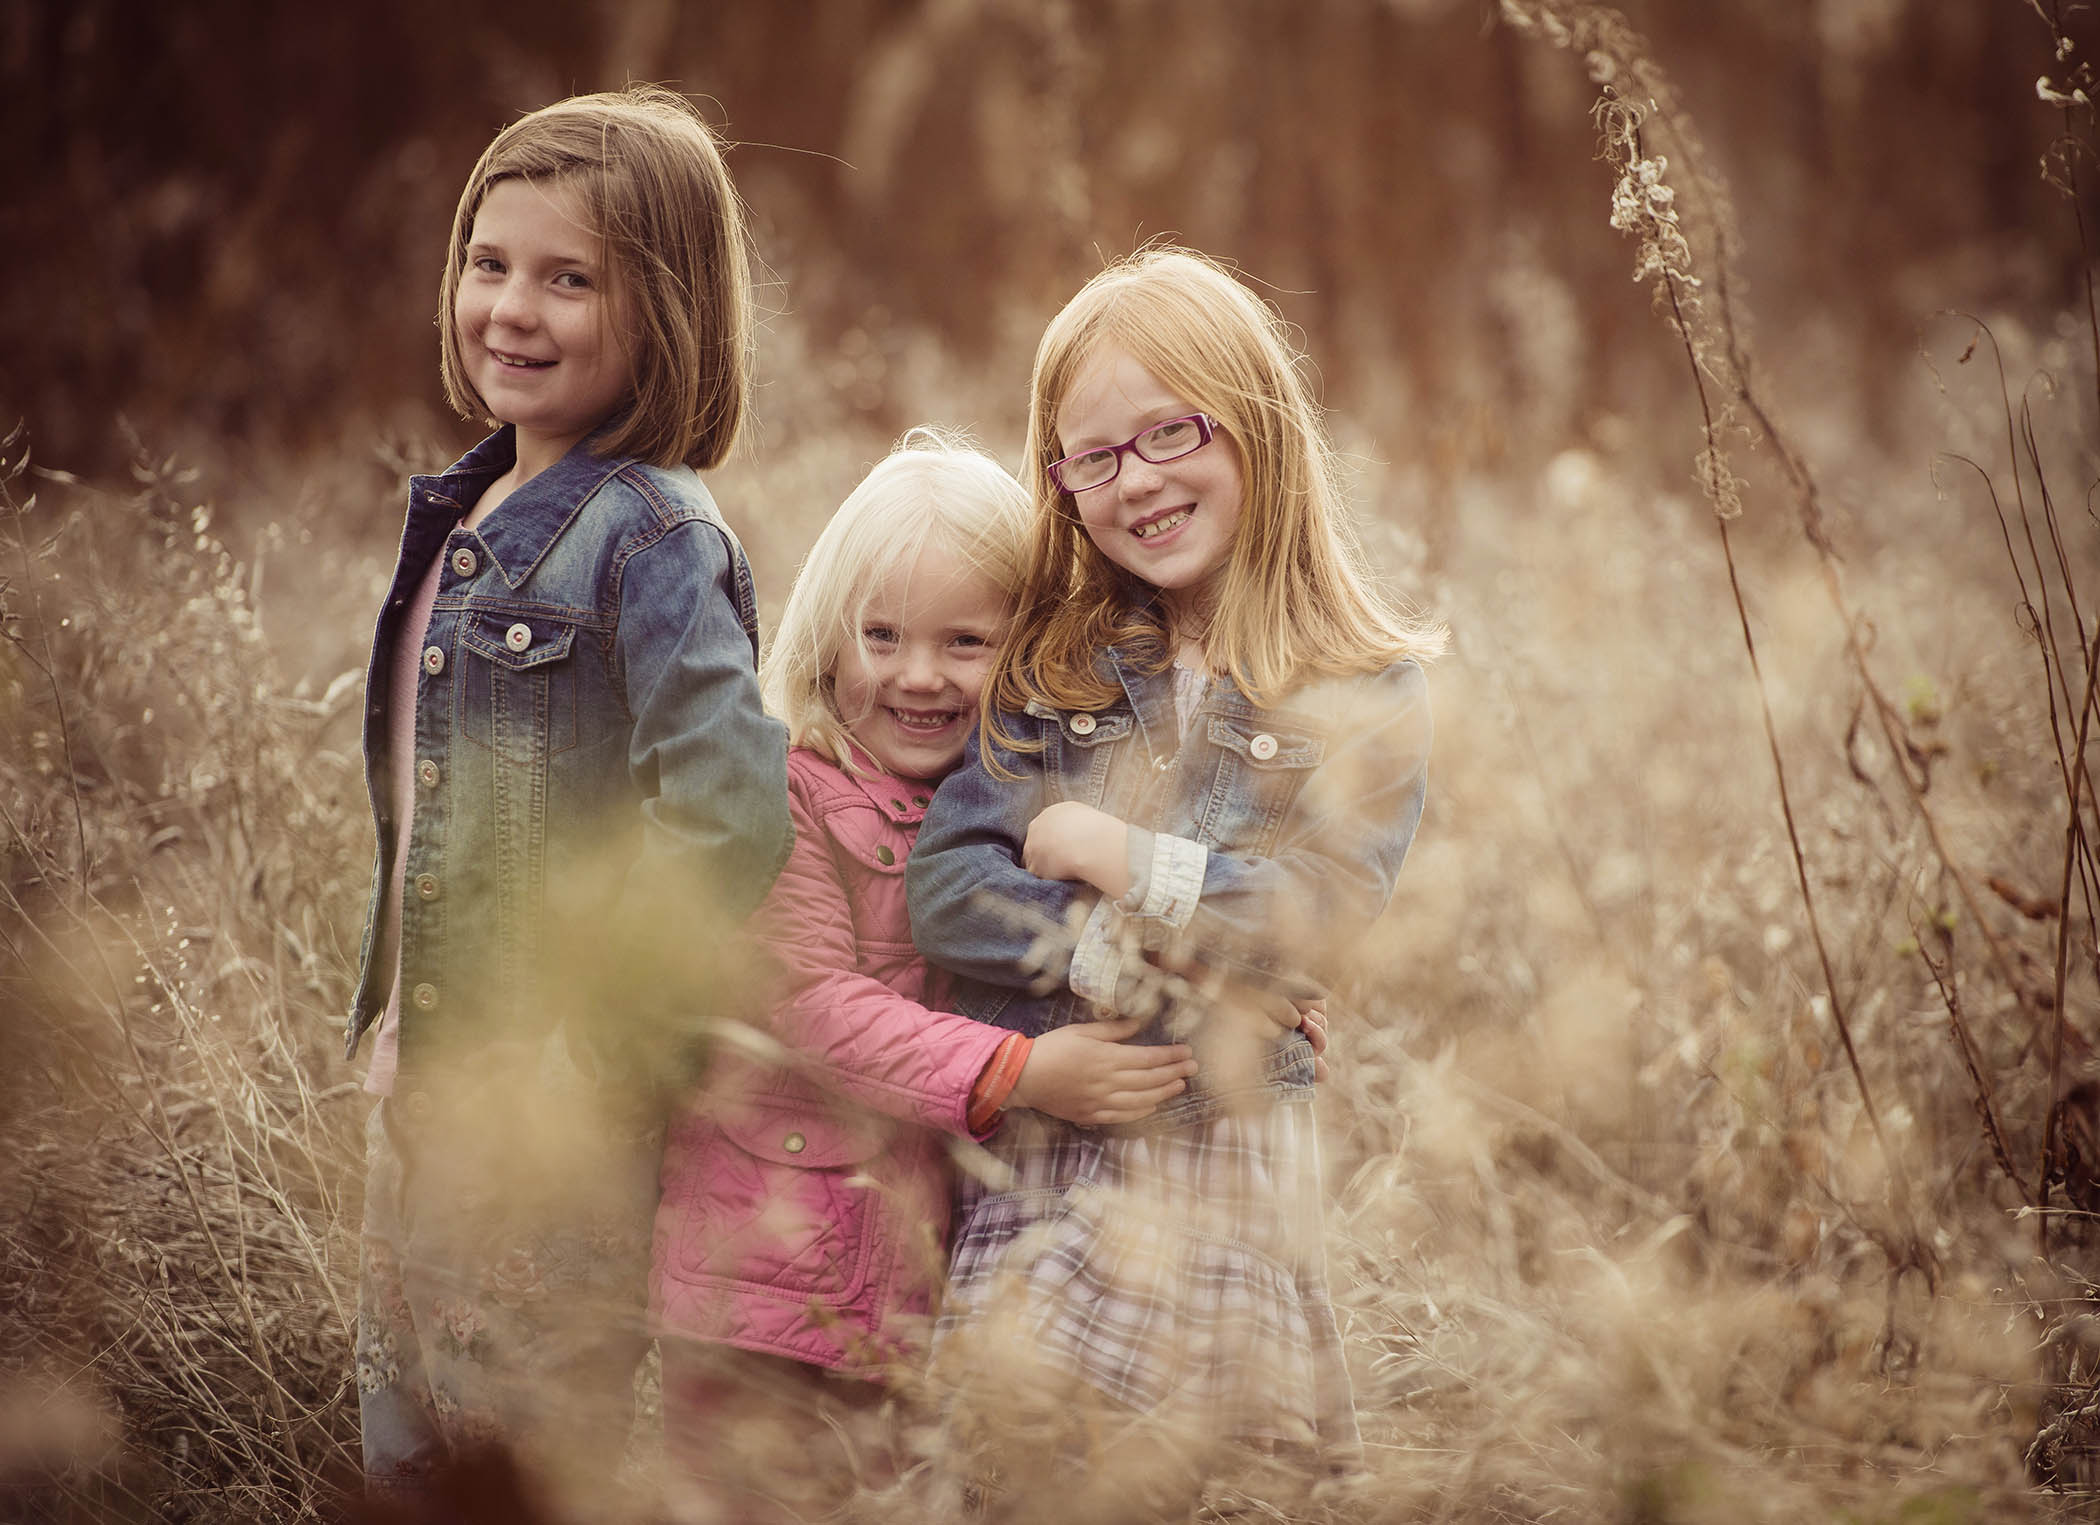 doncaster children family photographer007.jpg